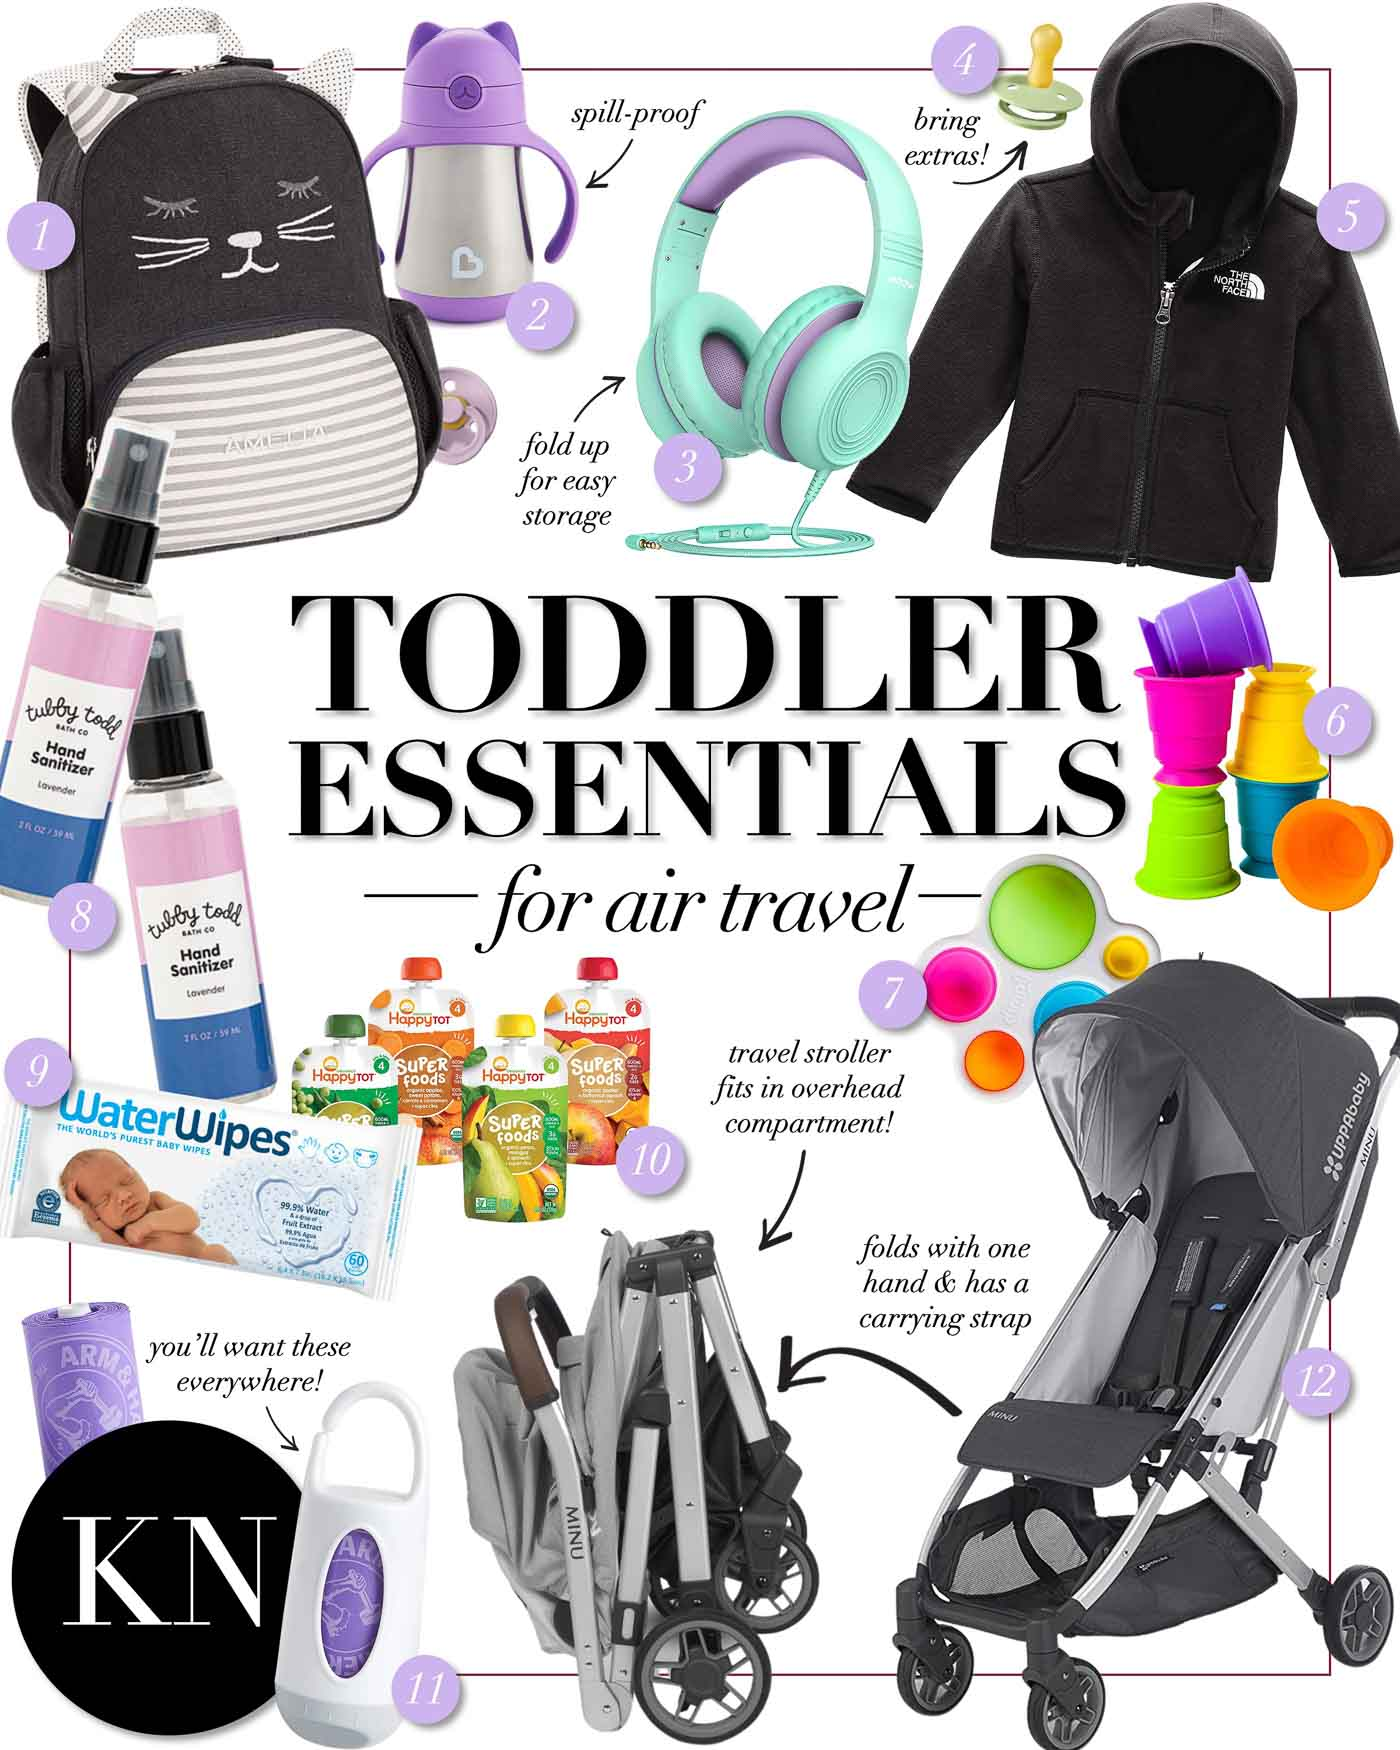 12 Airplane Travel Essentials for Toddlers